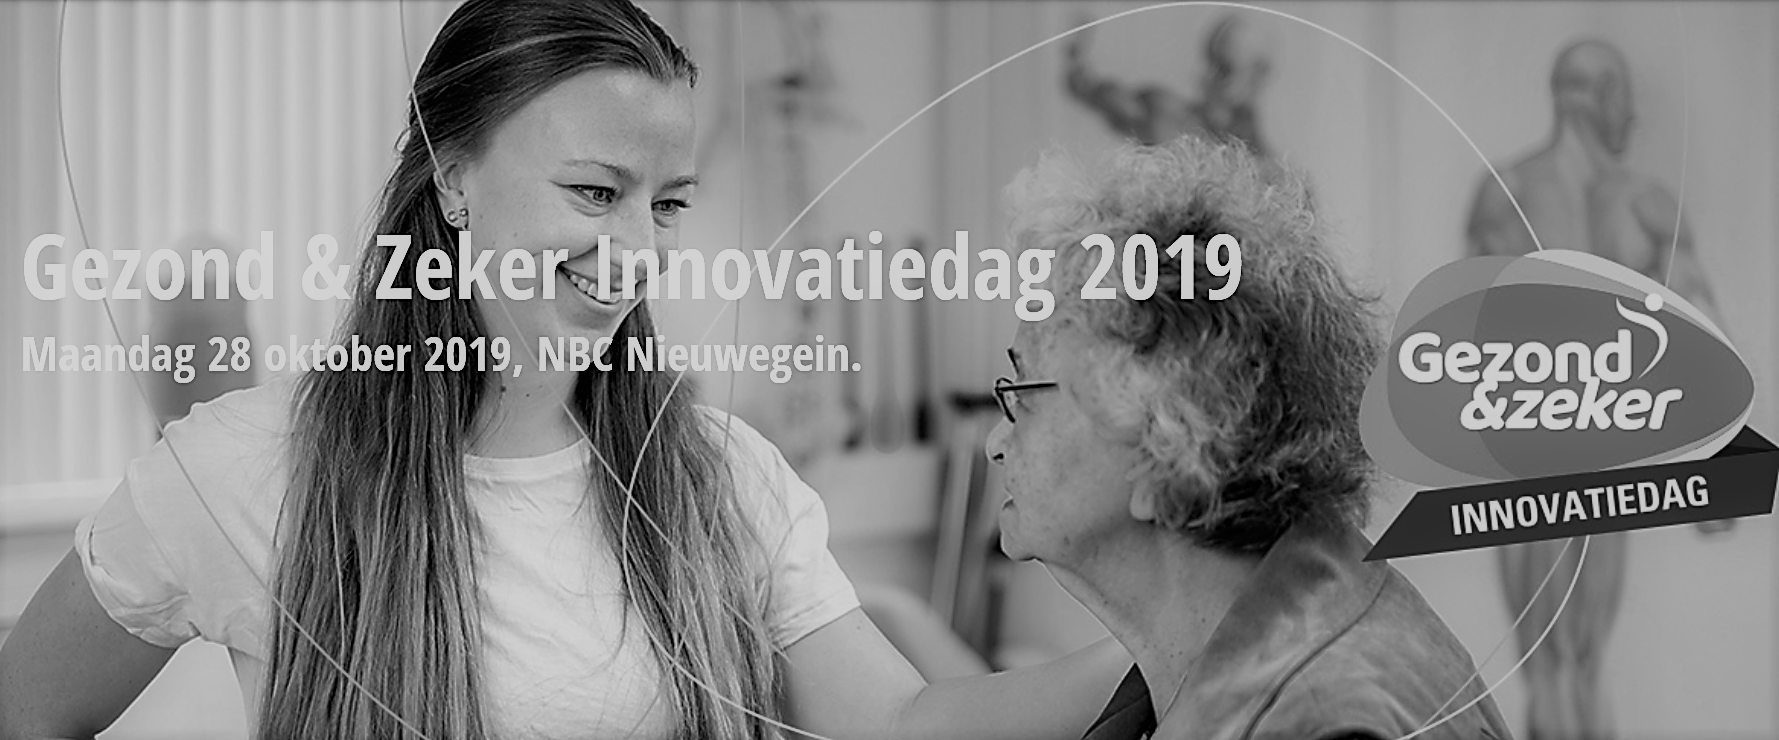 https://gezondenzekerinnovatiedag.nl/